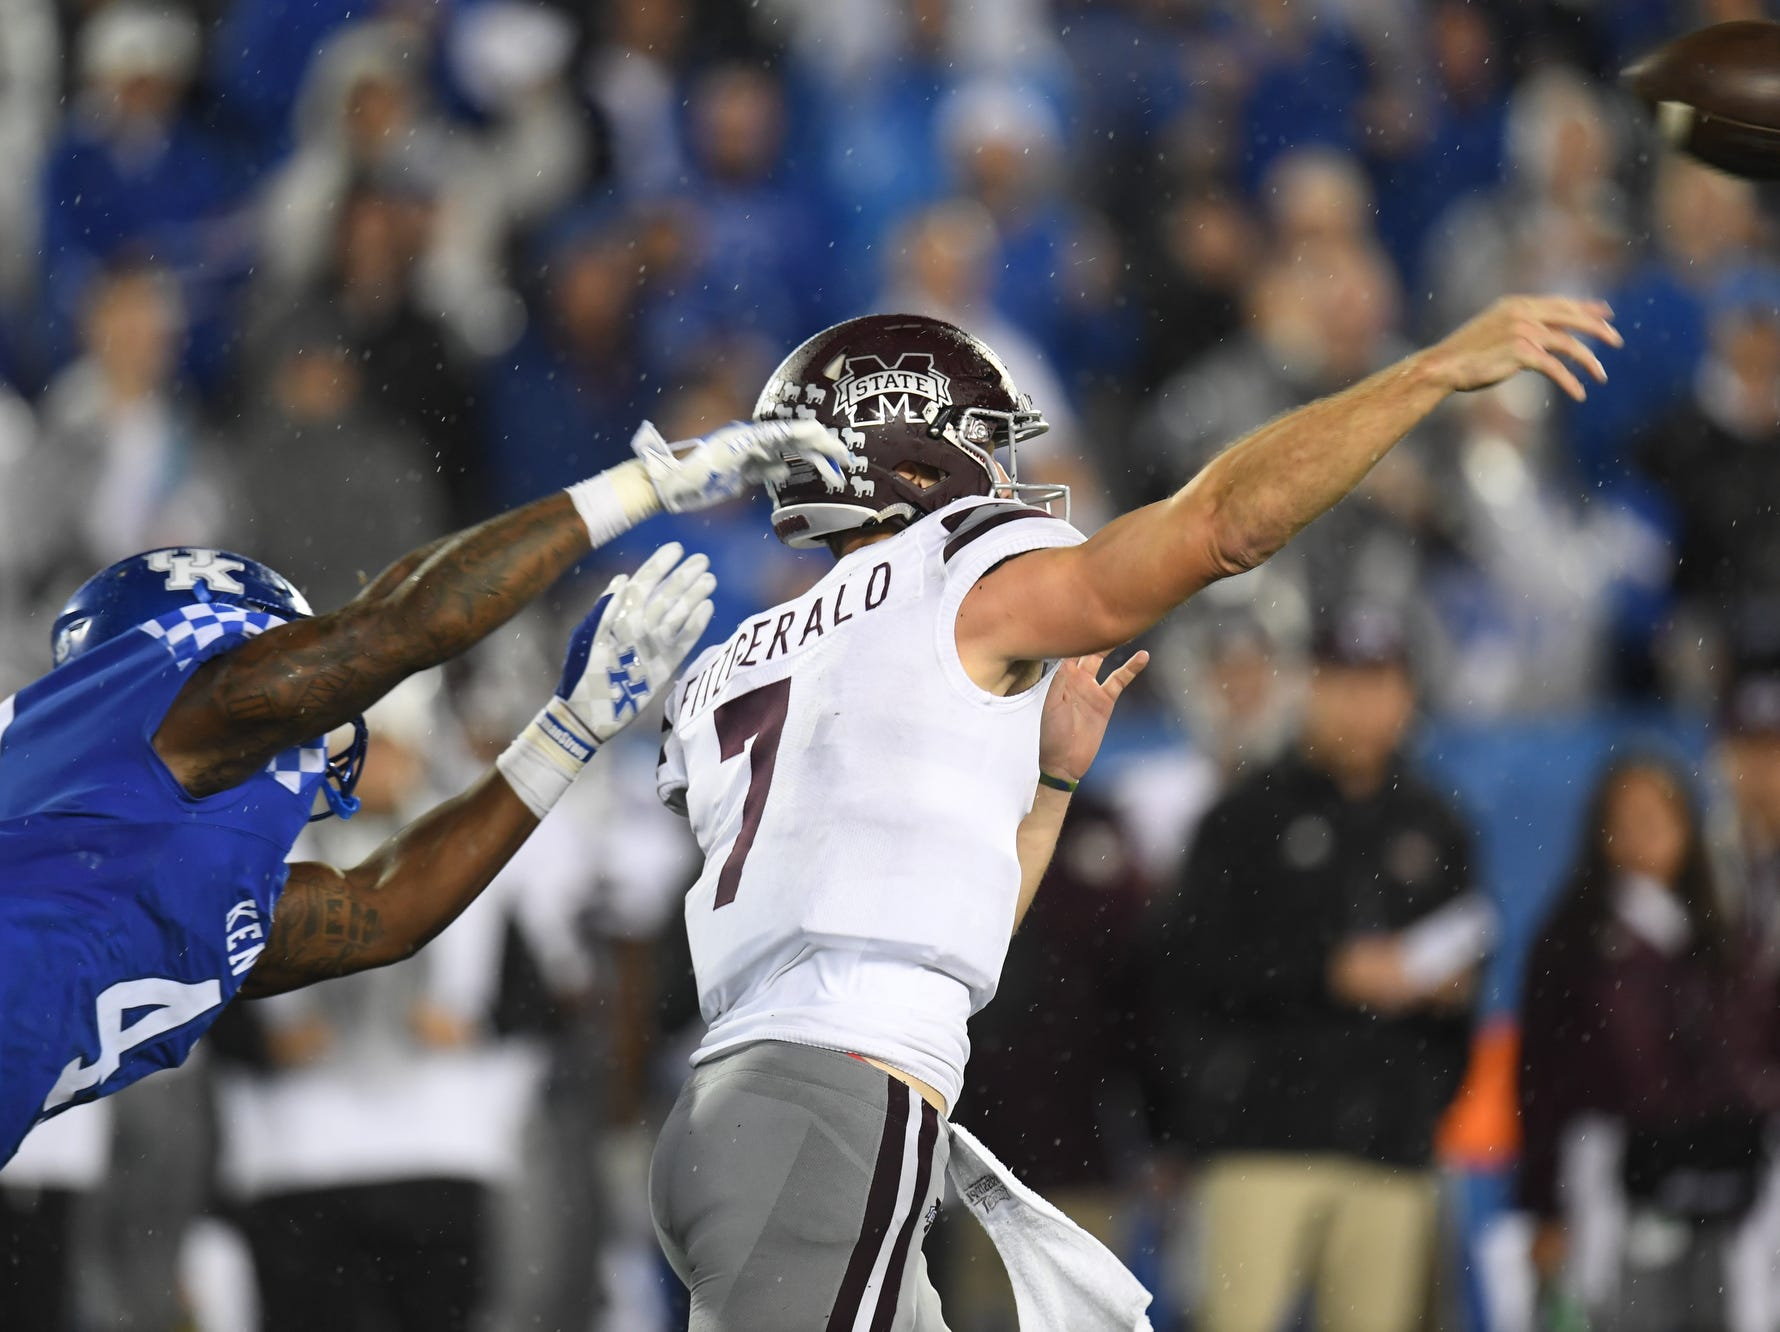 UK DE Josh Allen pressures Mississippi State QB Nick Fitzgerald during the University of Kentucky football game against Mississippi State at Kroger Field in Lexington, Kentucky on Saturday, September 22, 2018.